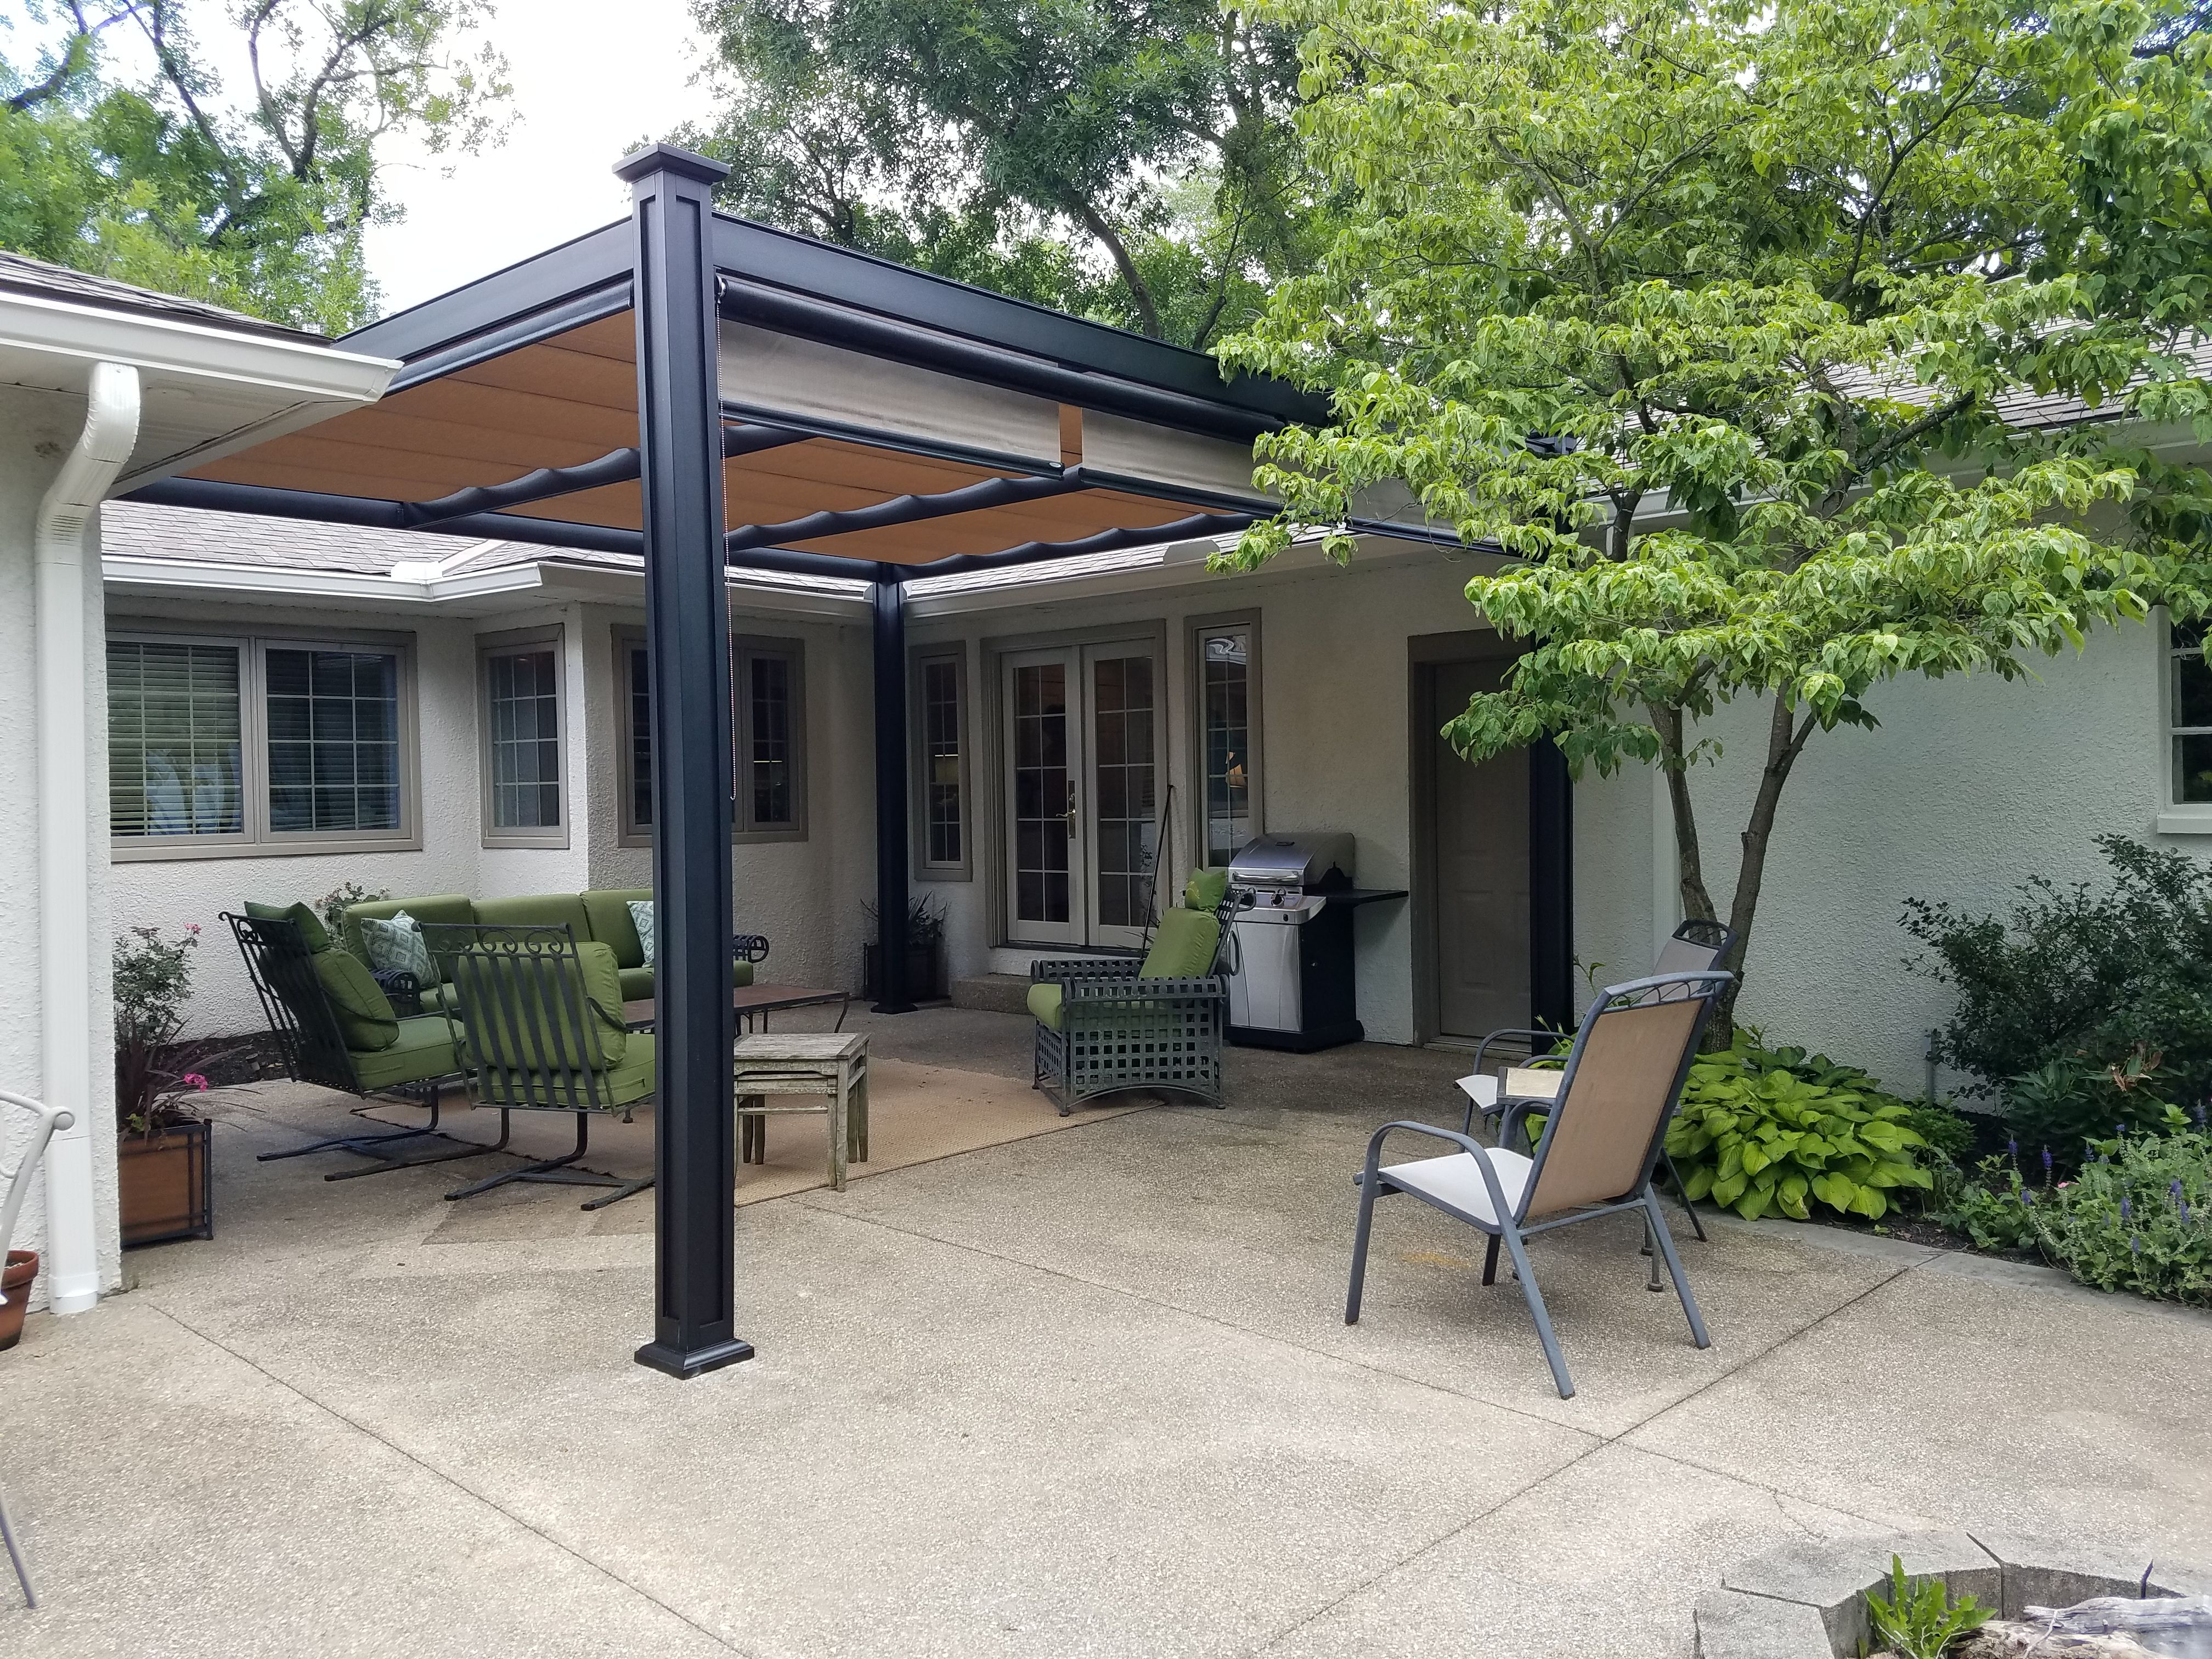 Shade For A Cozy Courtyard Aluminum Freestanding Bungalow Structure With Retractable Canopies Pergola Pergola Patio Backyard Pergola